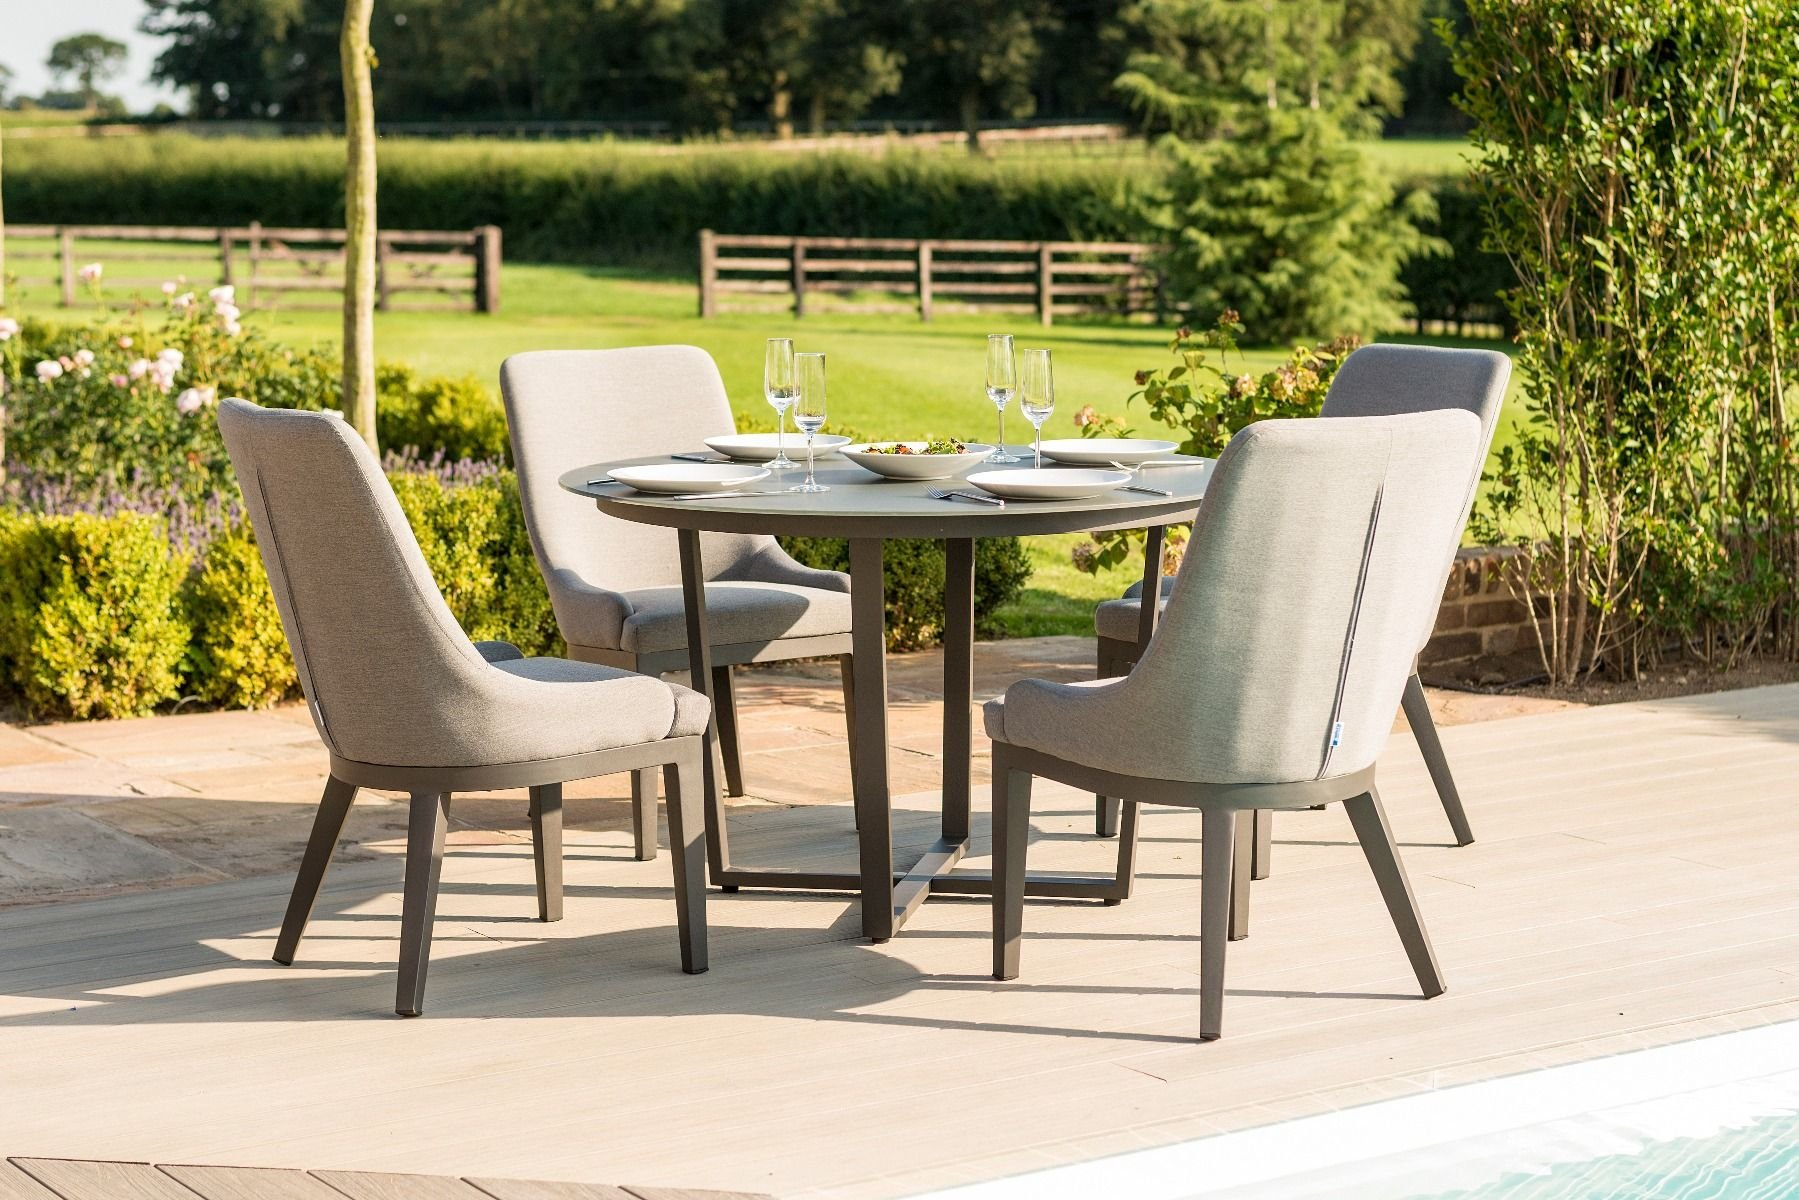 Pacific 8 Seat Round Dining Set - Taupe